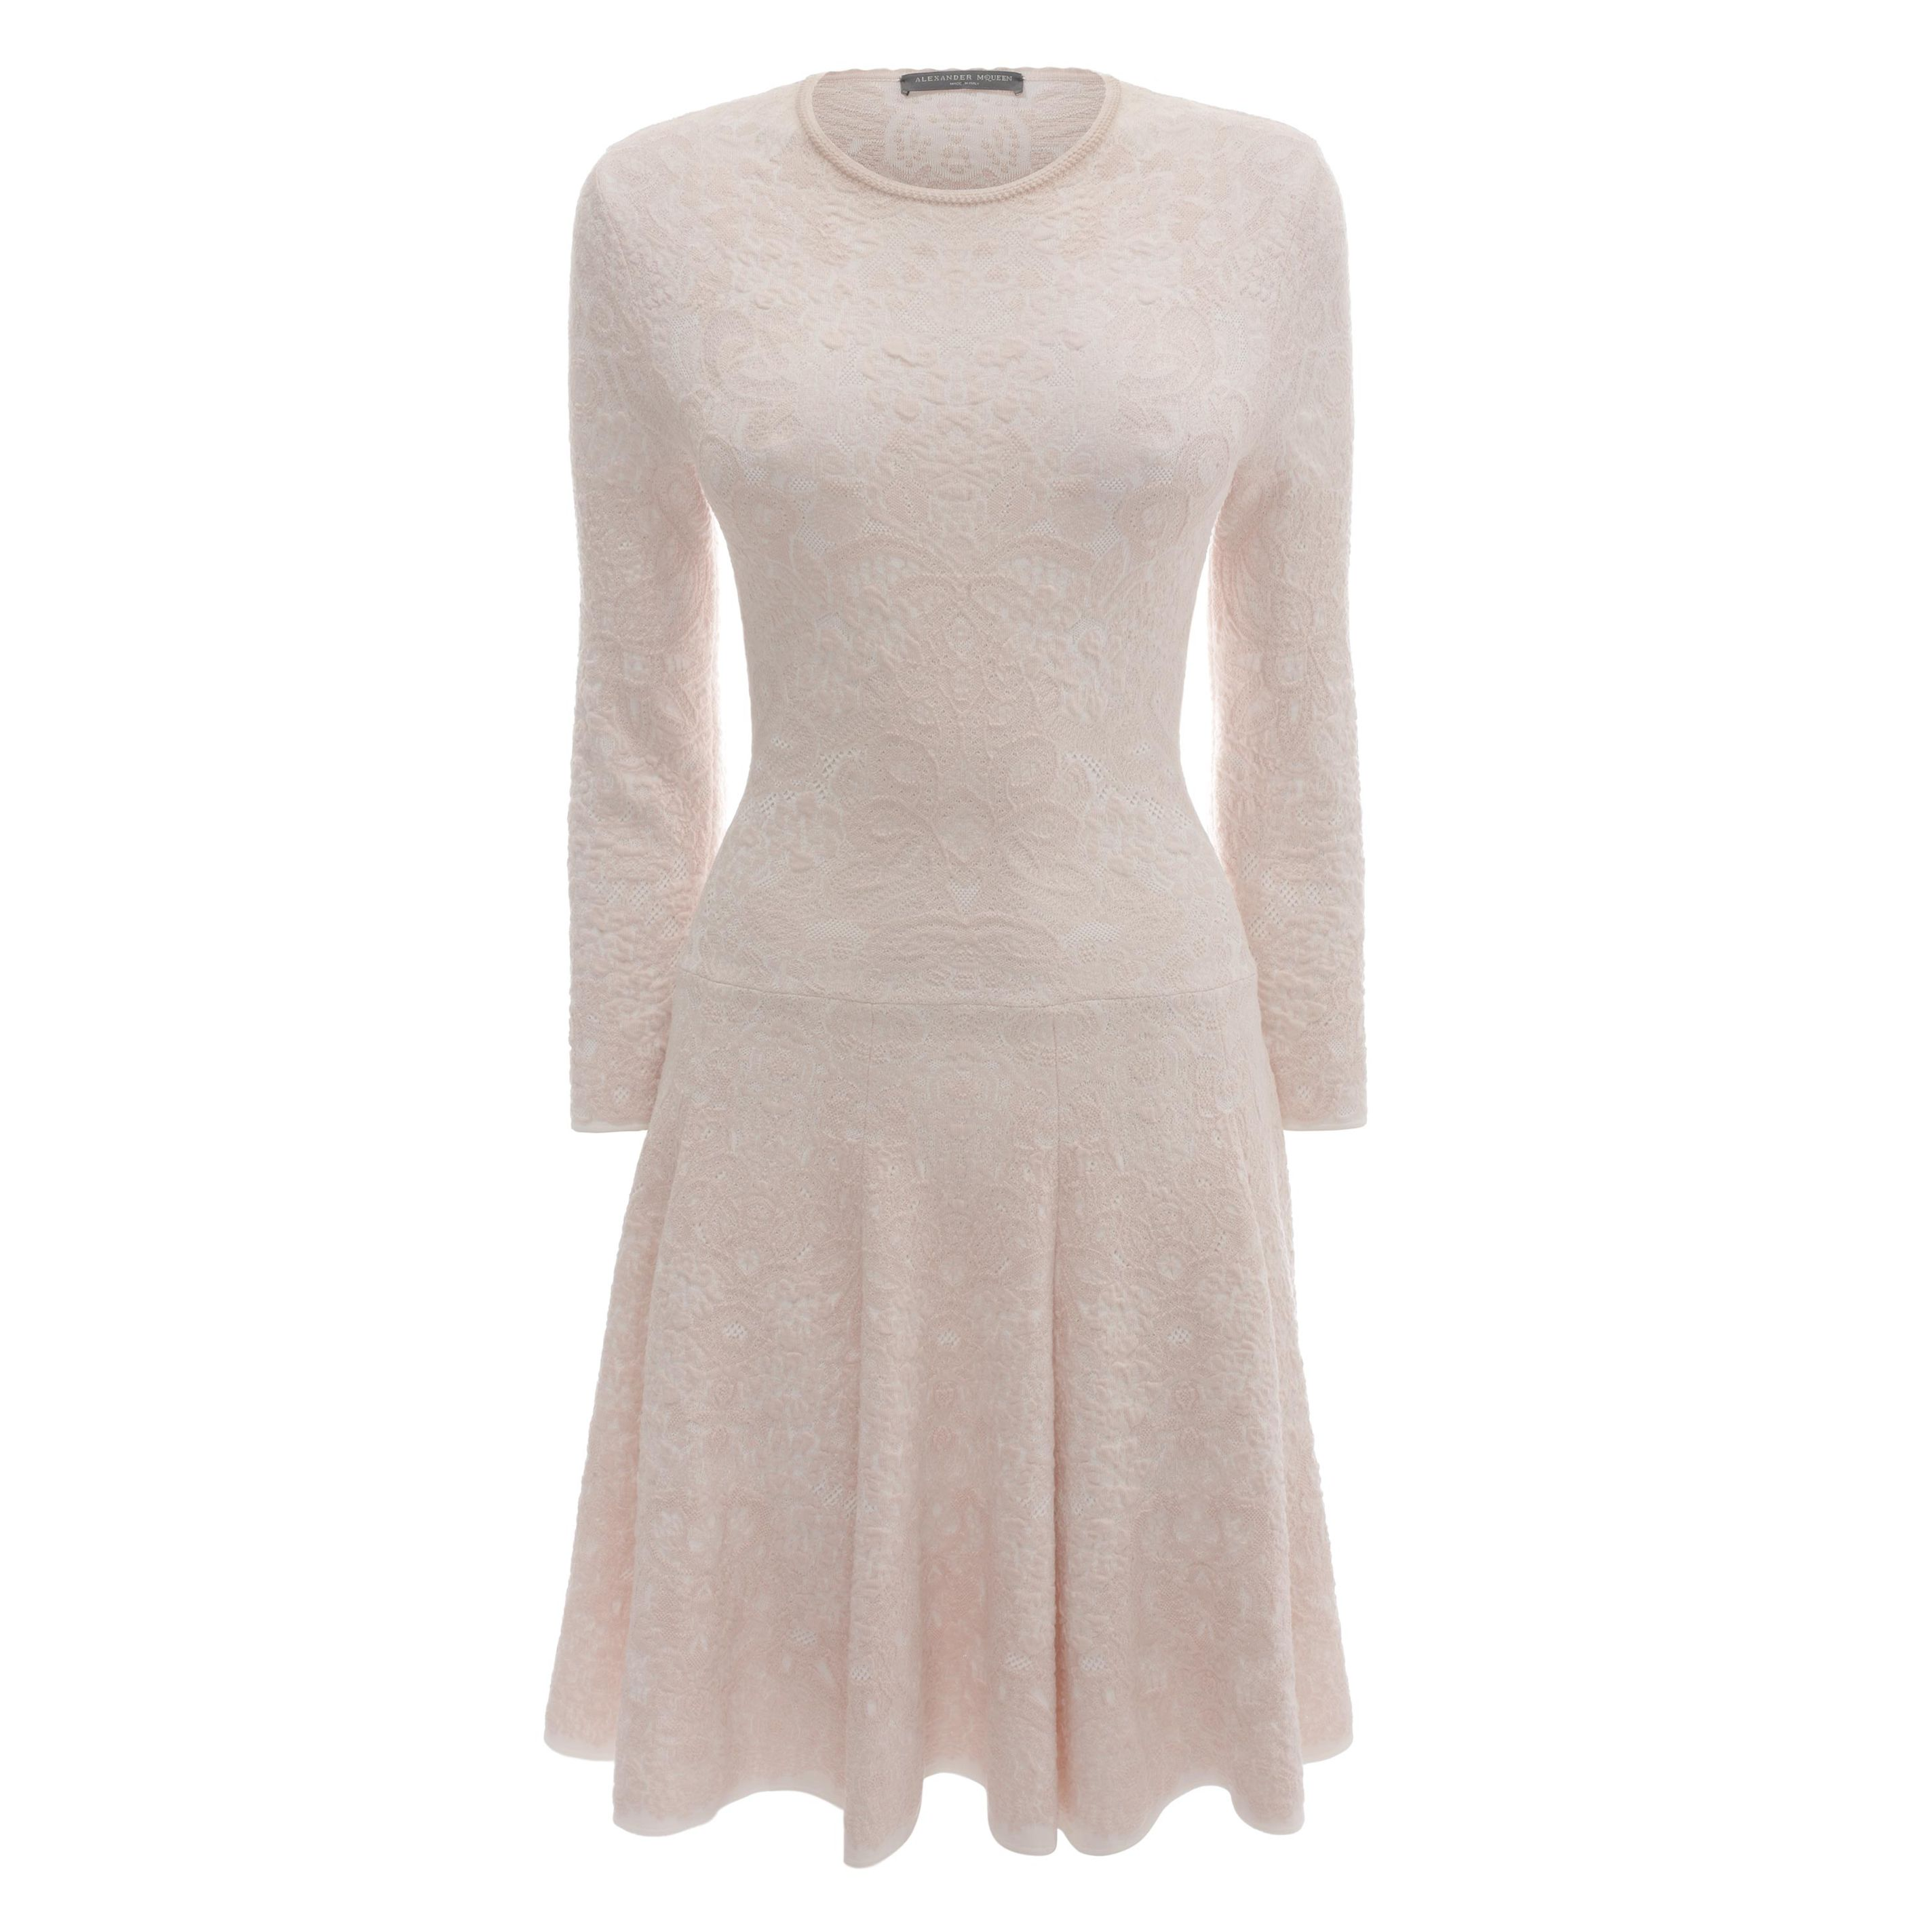 Spine Lace Crochet Jacquard Knit Dress Alexander McQueen | Mini Dress | Dresses |